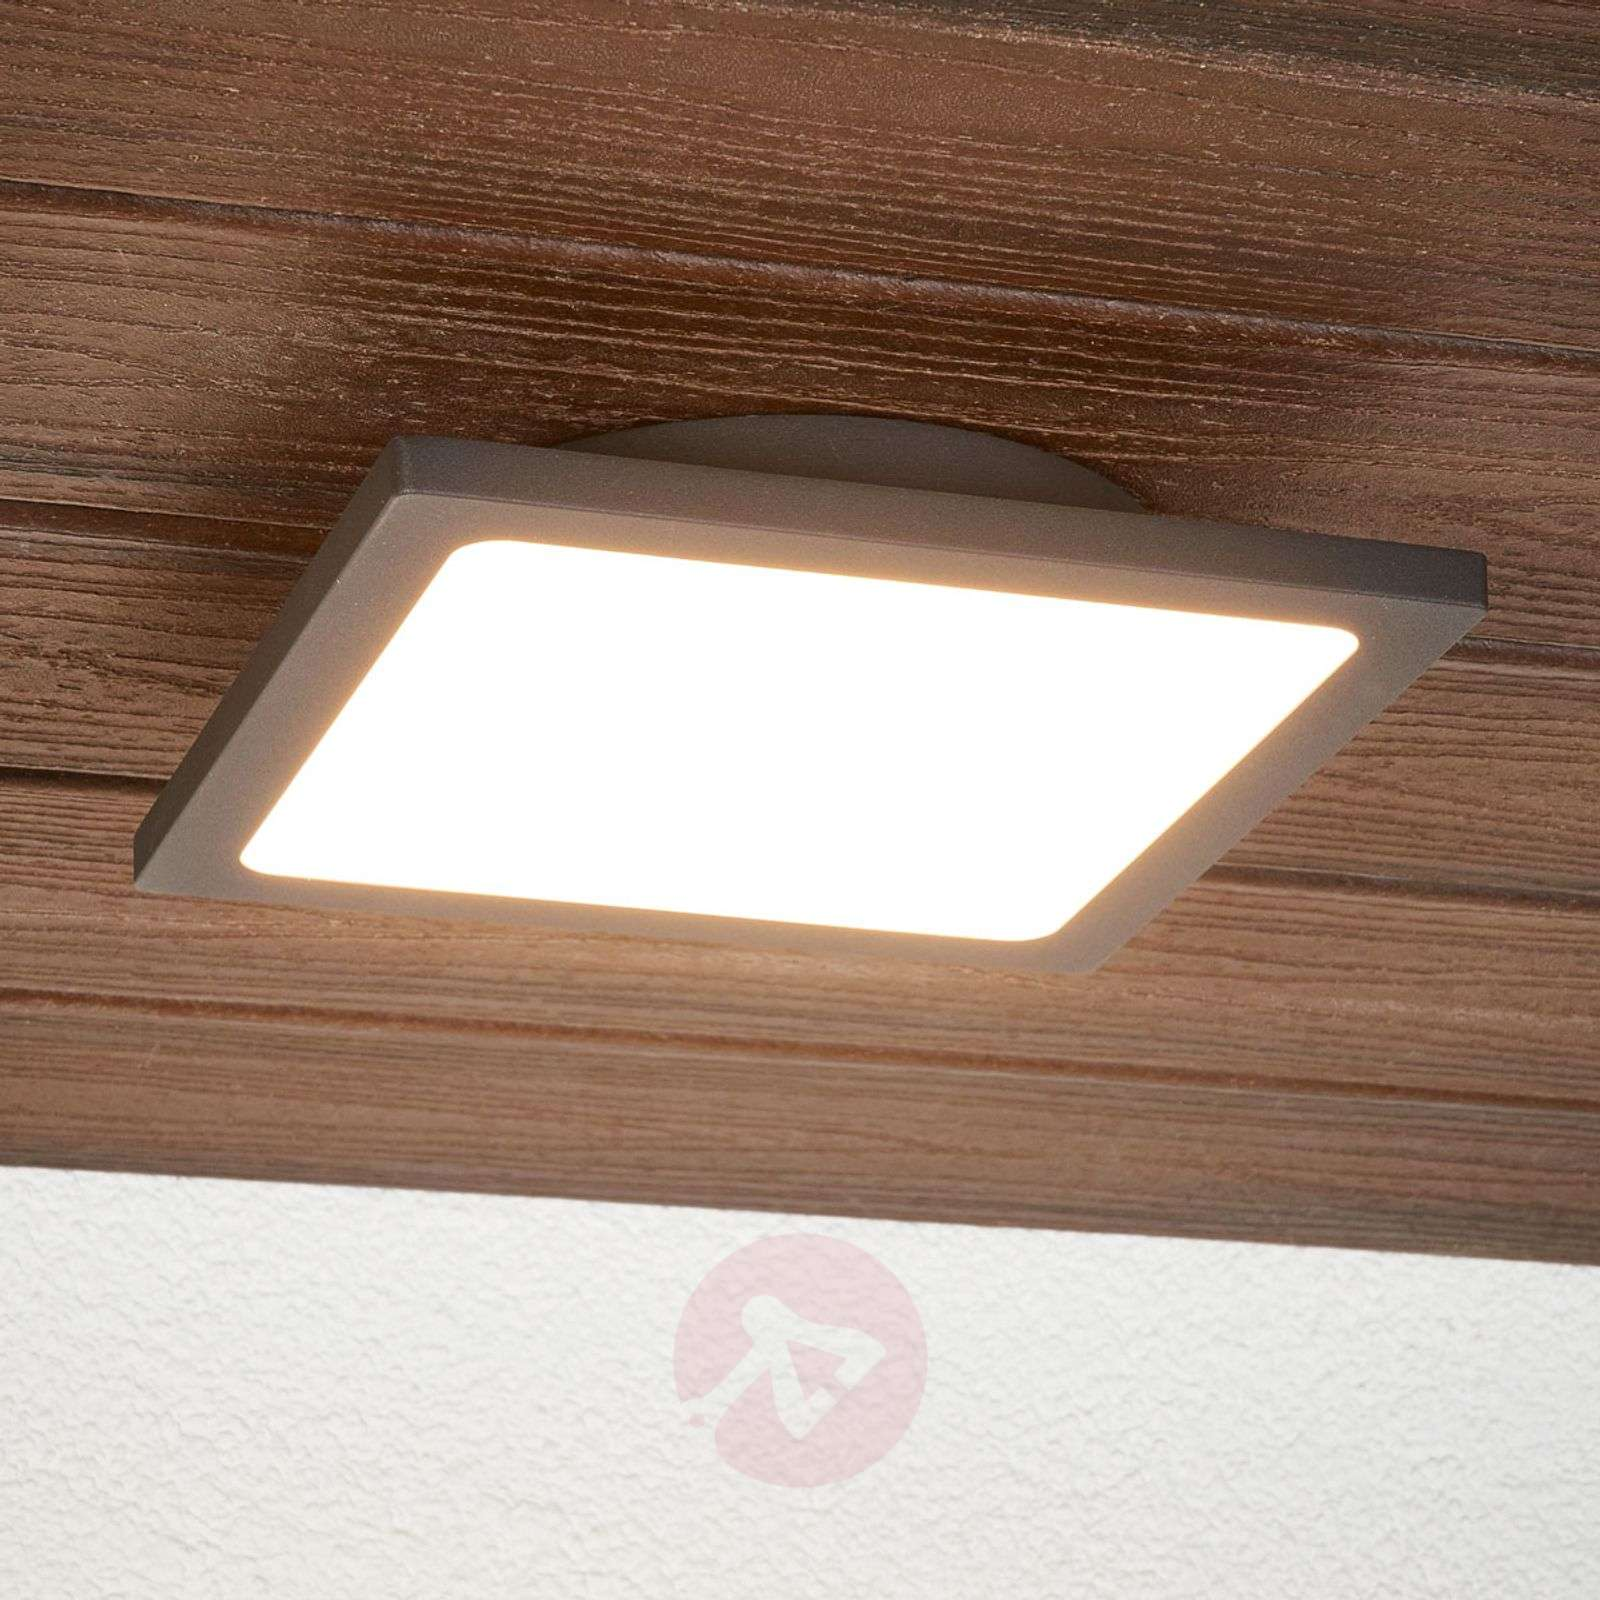 Swell Mabella Led Outdoor Ceiling Lamp With Sensor Download Free Architecture Designs Jebrpmadebymaigaardcom